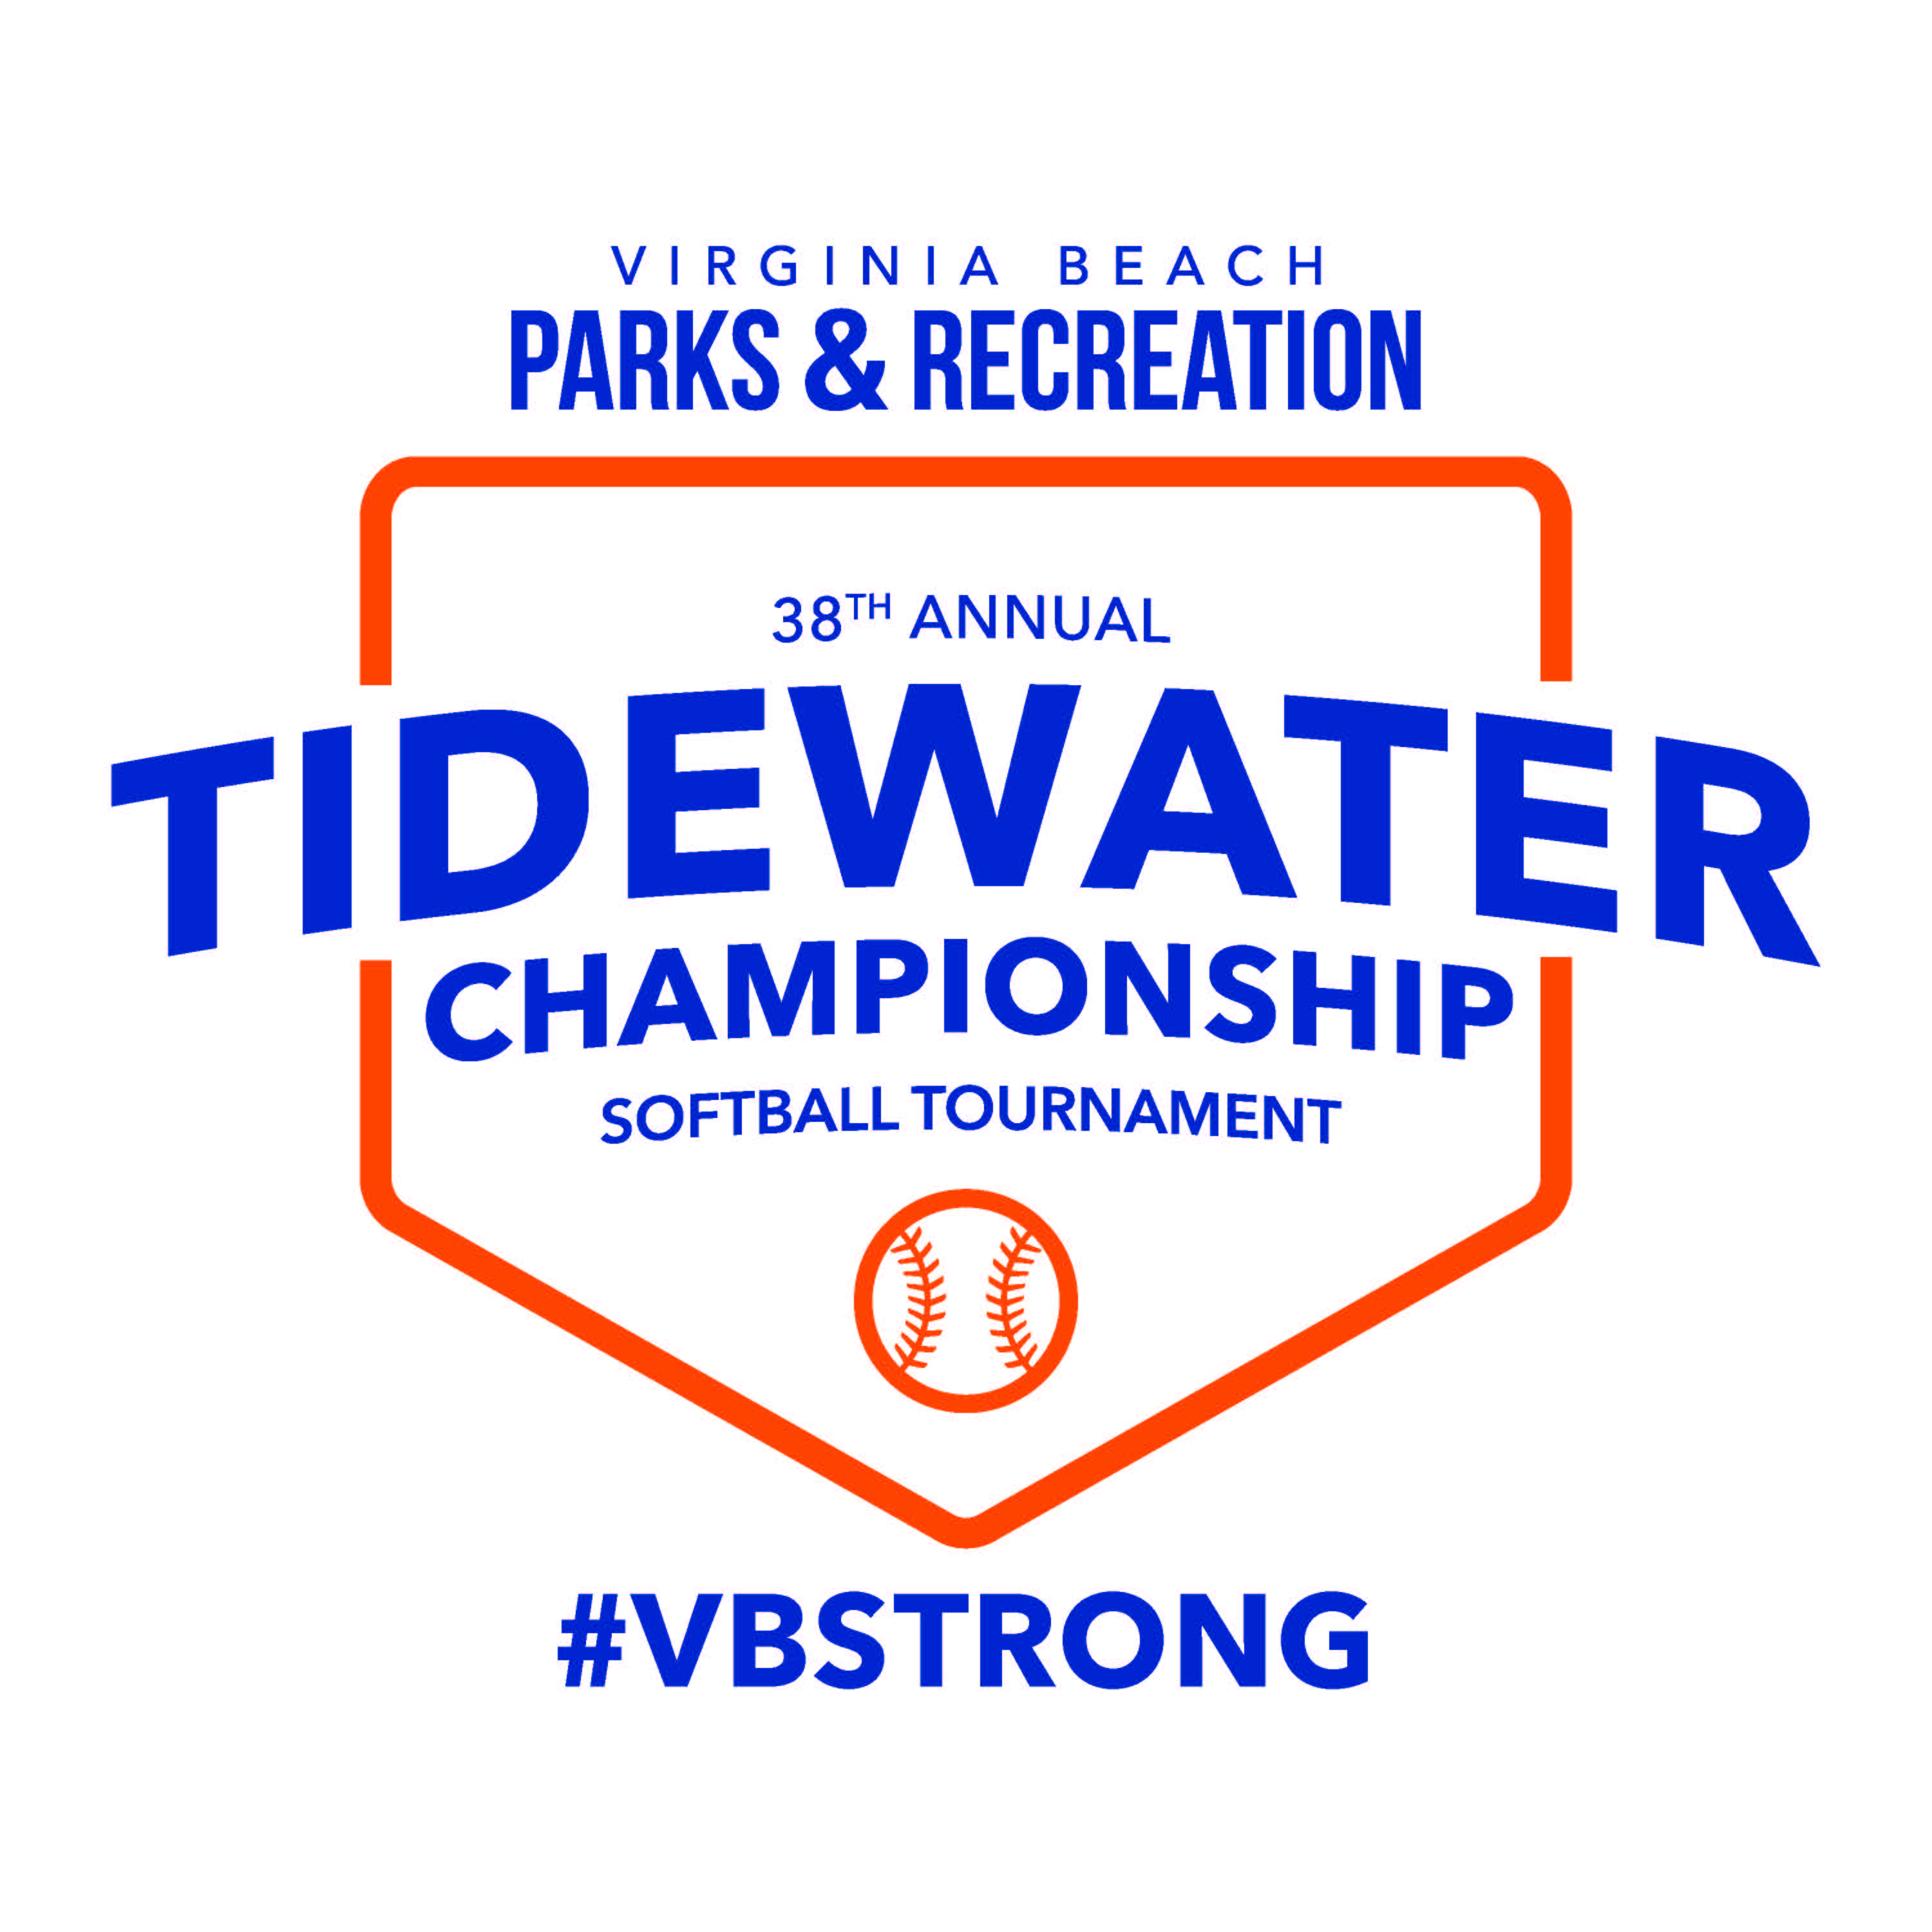 Tidewater-softball-champ-logo.jpg